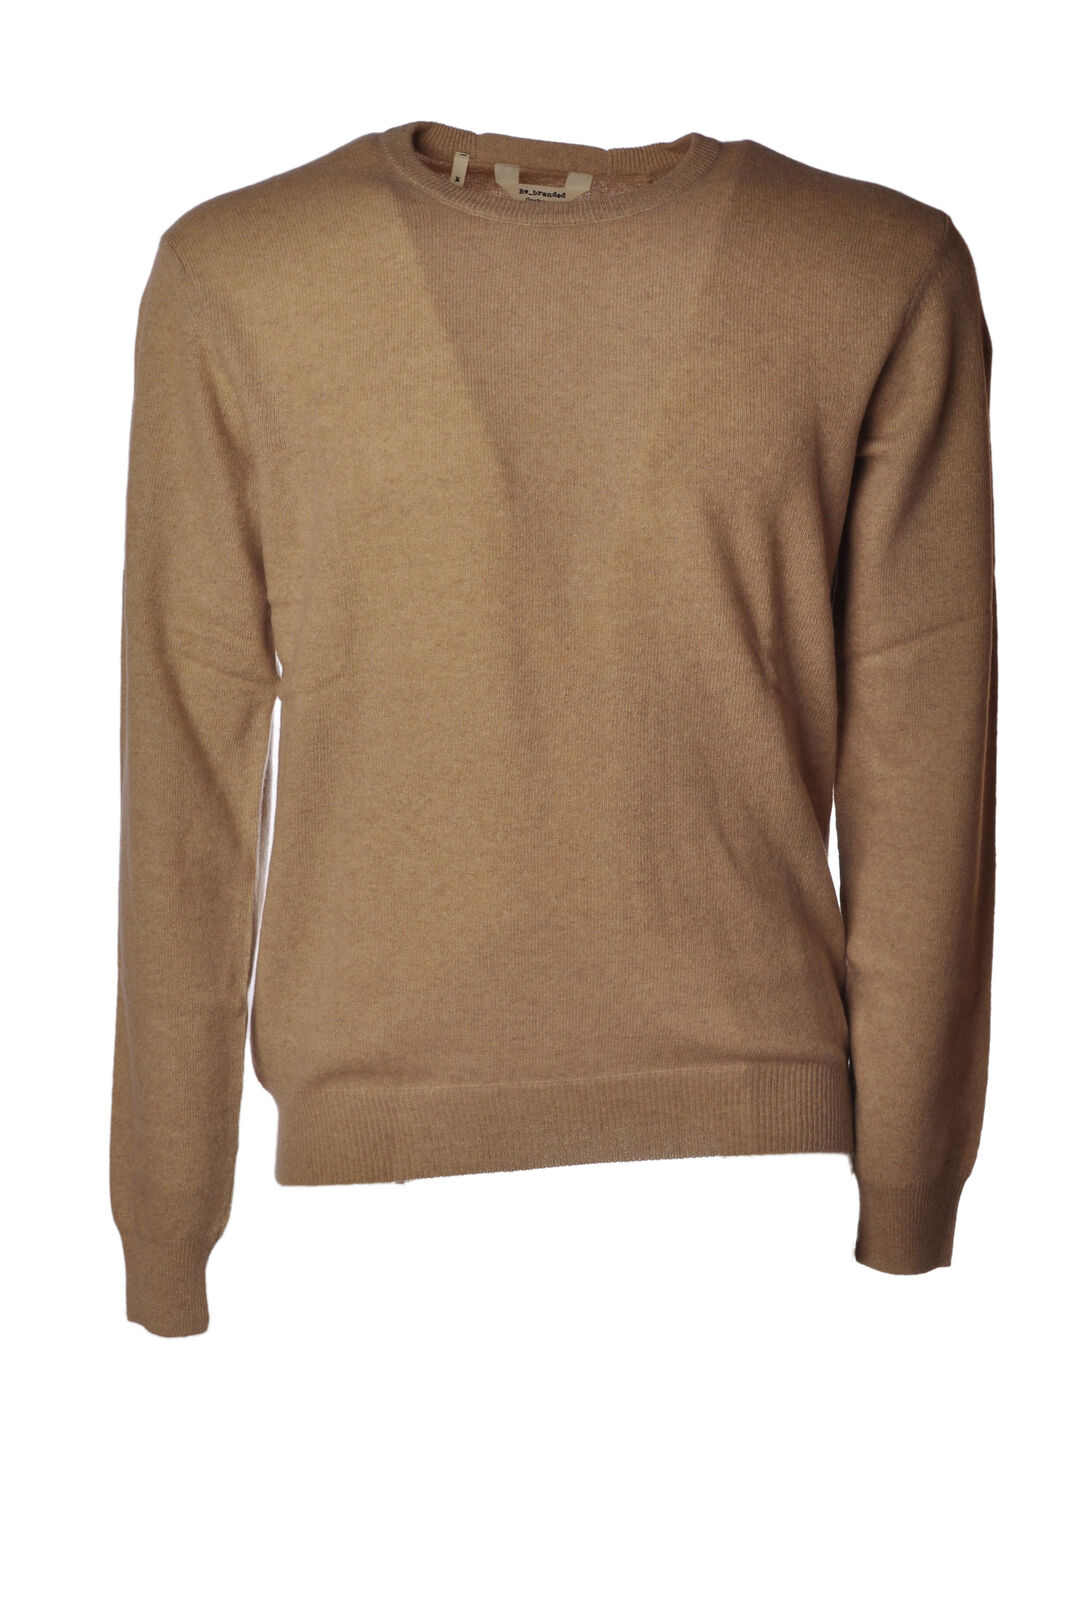 Re_Branded - Knitwear-Sweaters - Man - Beige - 4687522B183901